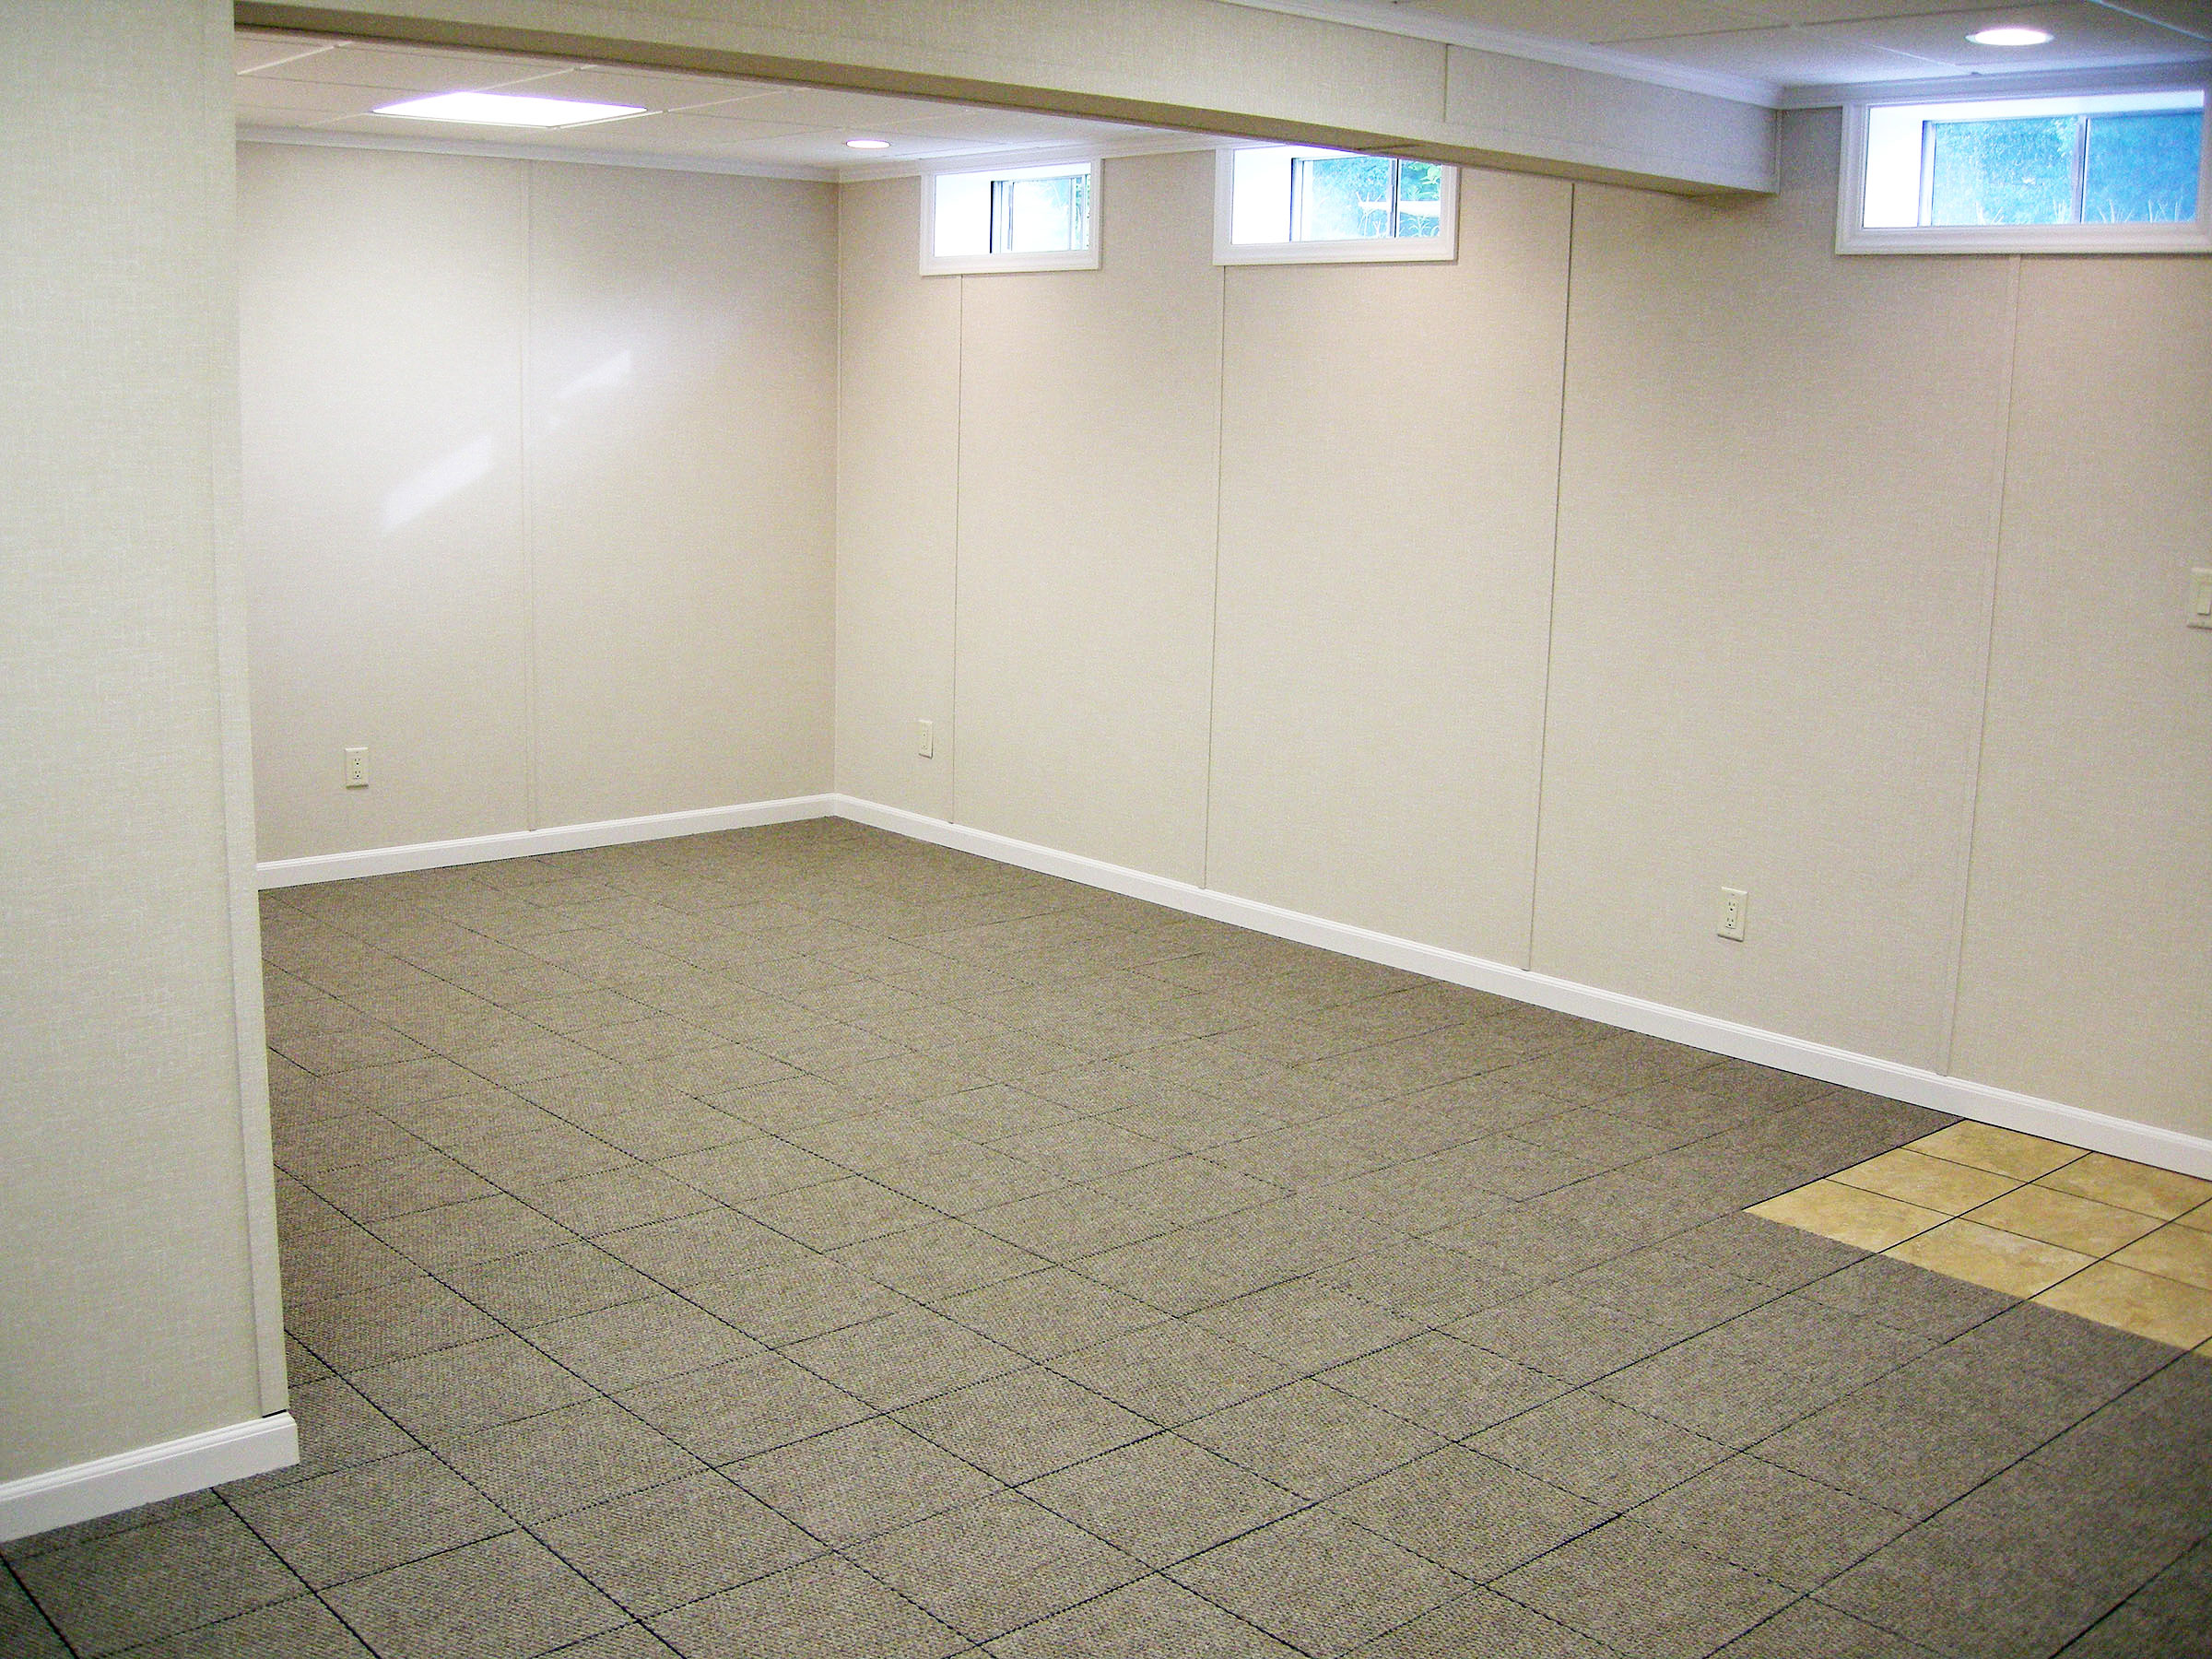 Basement Flooring Options That Last   Image 1